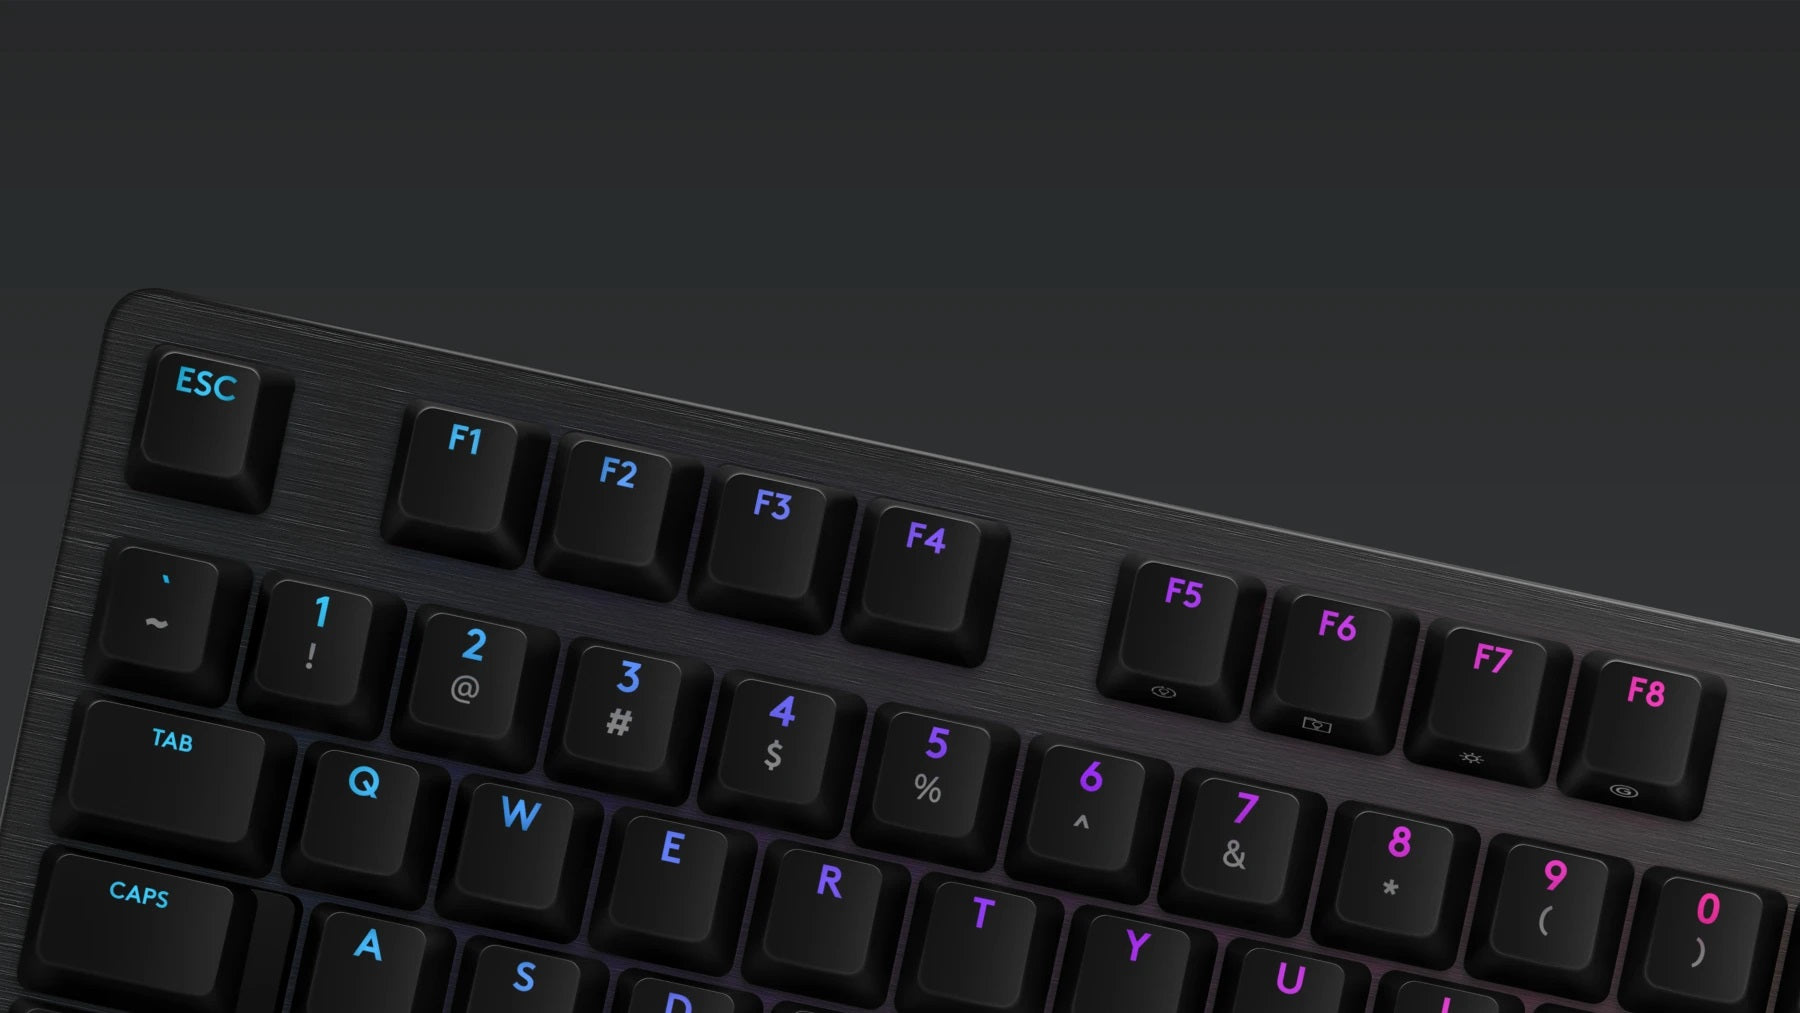 DEDICATED GAMING FEATURES - Don't lose a game because you fat-fingered the Windows® key. Toggle game mode with FN+F8. Deactivate additional keys using Logitech G HUB. Store per-key RGB lighting profiles in the onboard memory for use on any system.